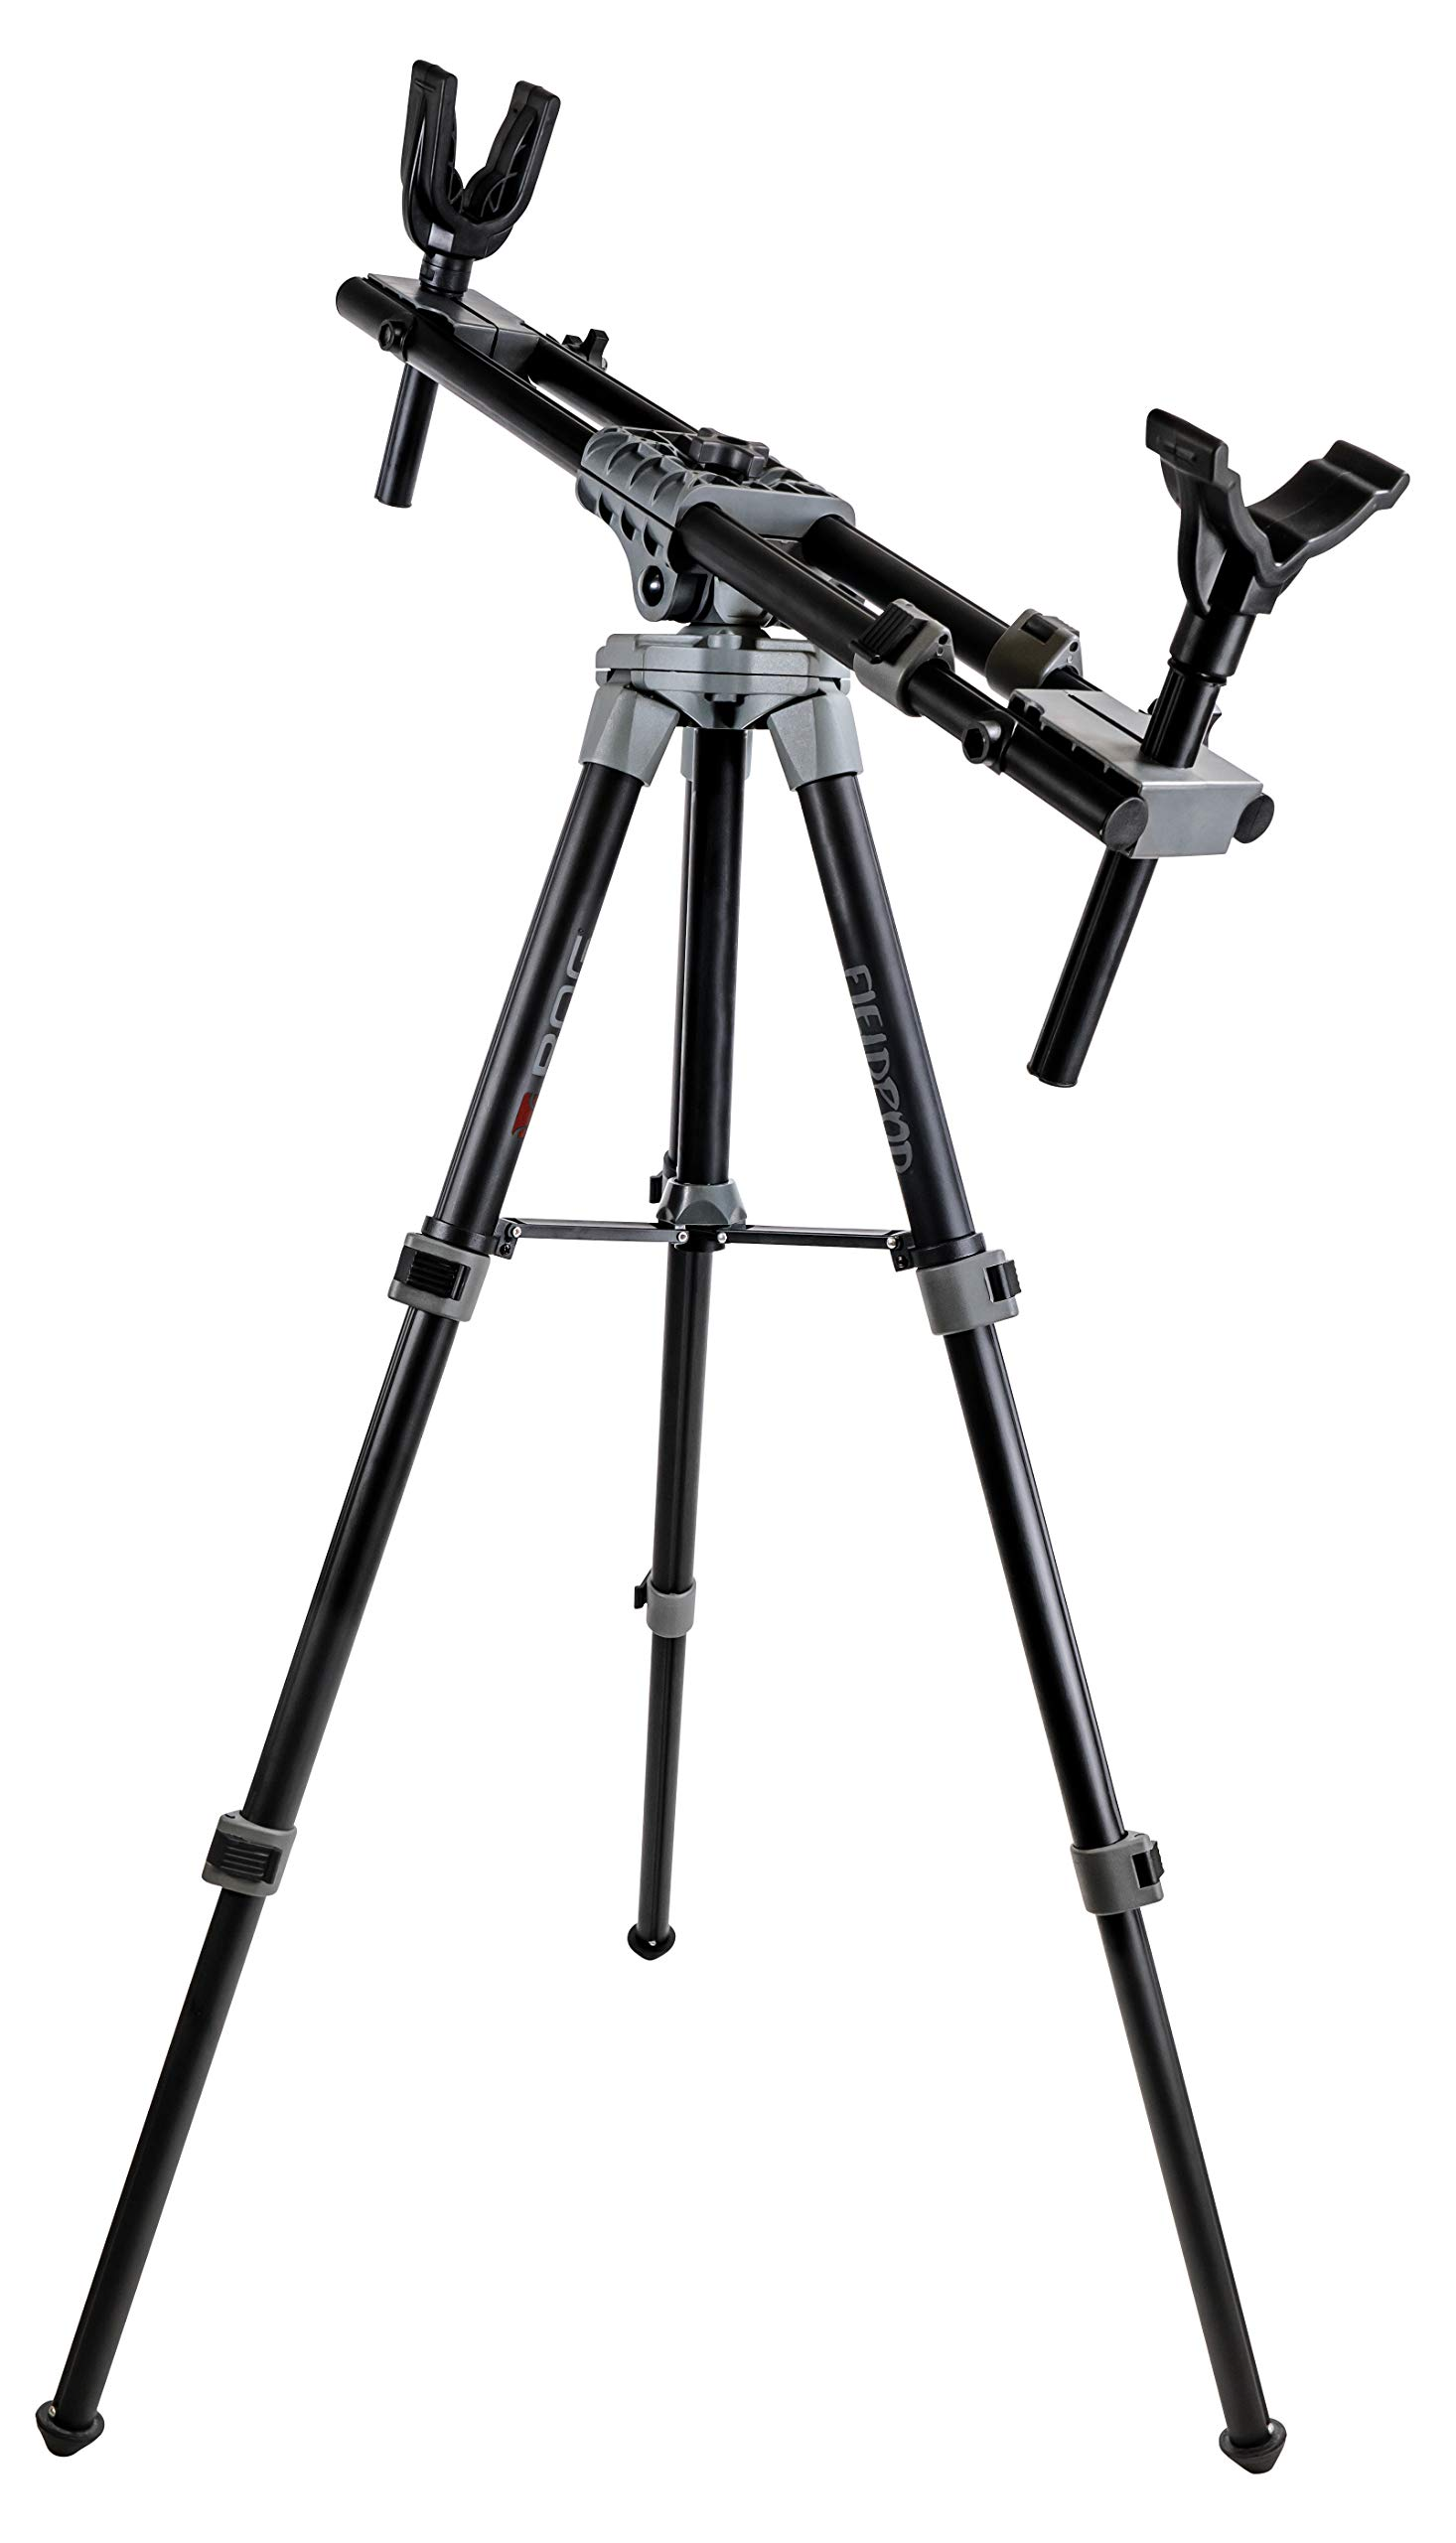 BOG FieldPod Adjustable Ambidextrous Rifle Shooting Rest for Outdoor Range and Hunting by BOG